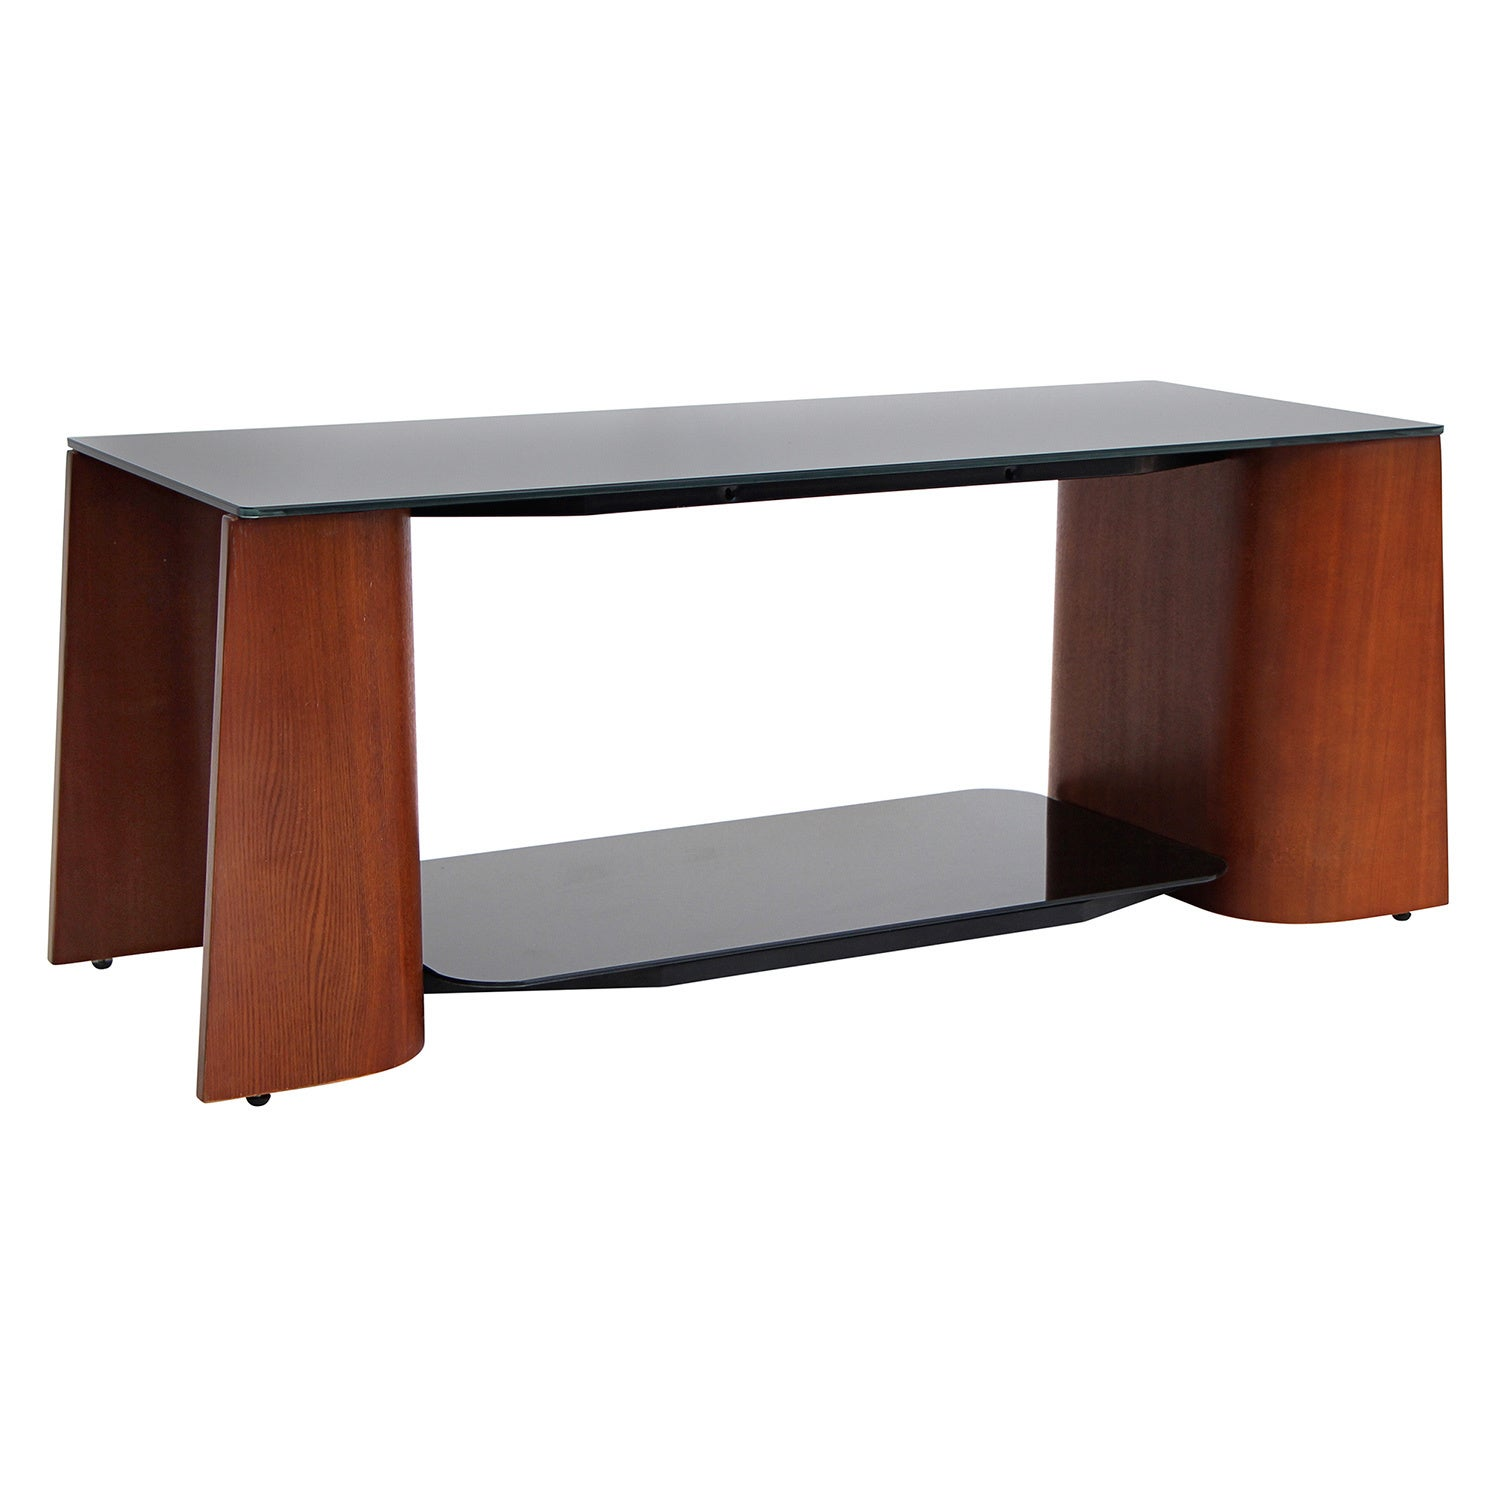 Ladder Bent Wood Coffee Table